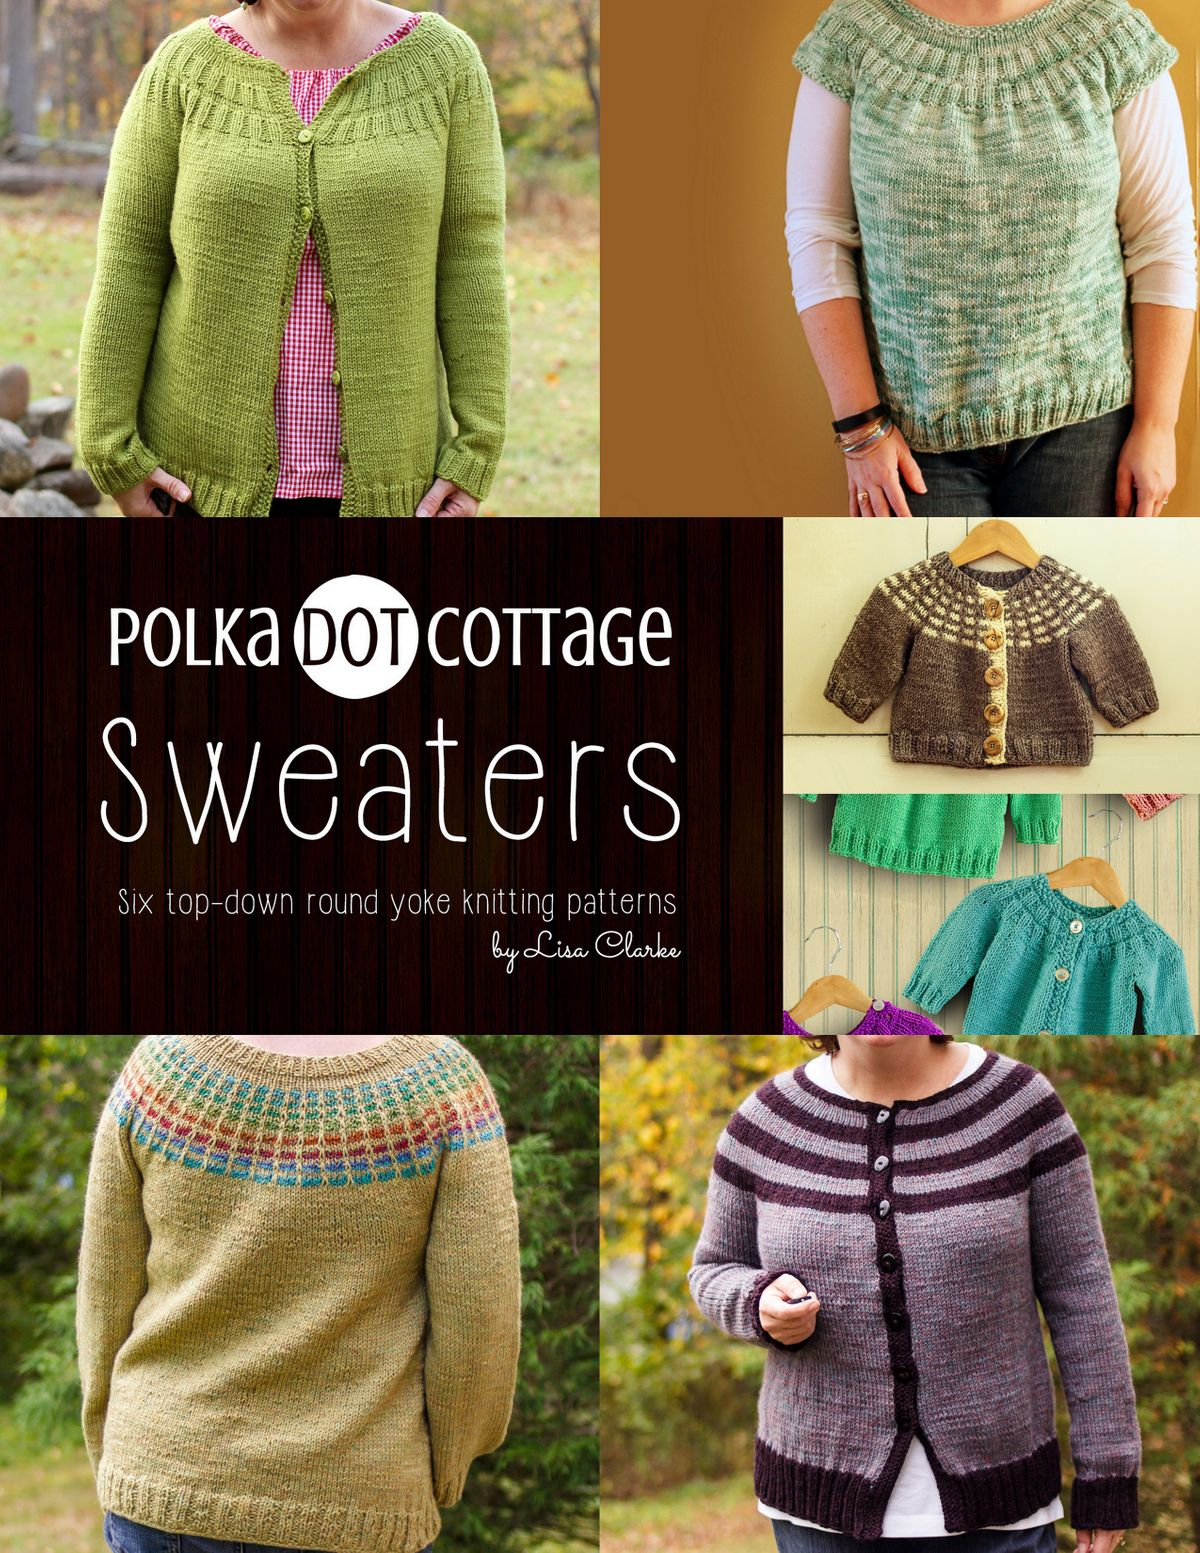 Yoke Knitting Pattern Polka Dot Cottage Sweaters Ebook Lisa Clarke Rakuten Kobo